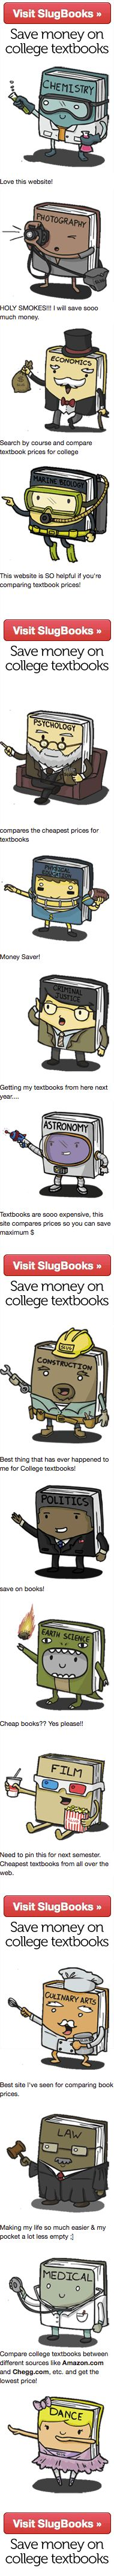 Save money on college textbooks